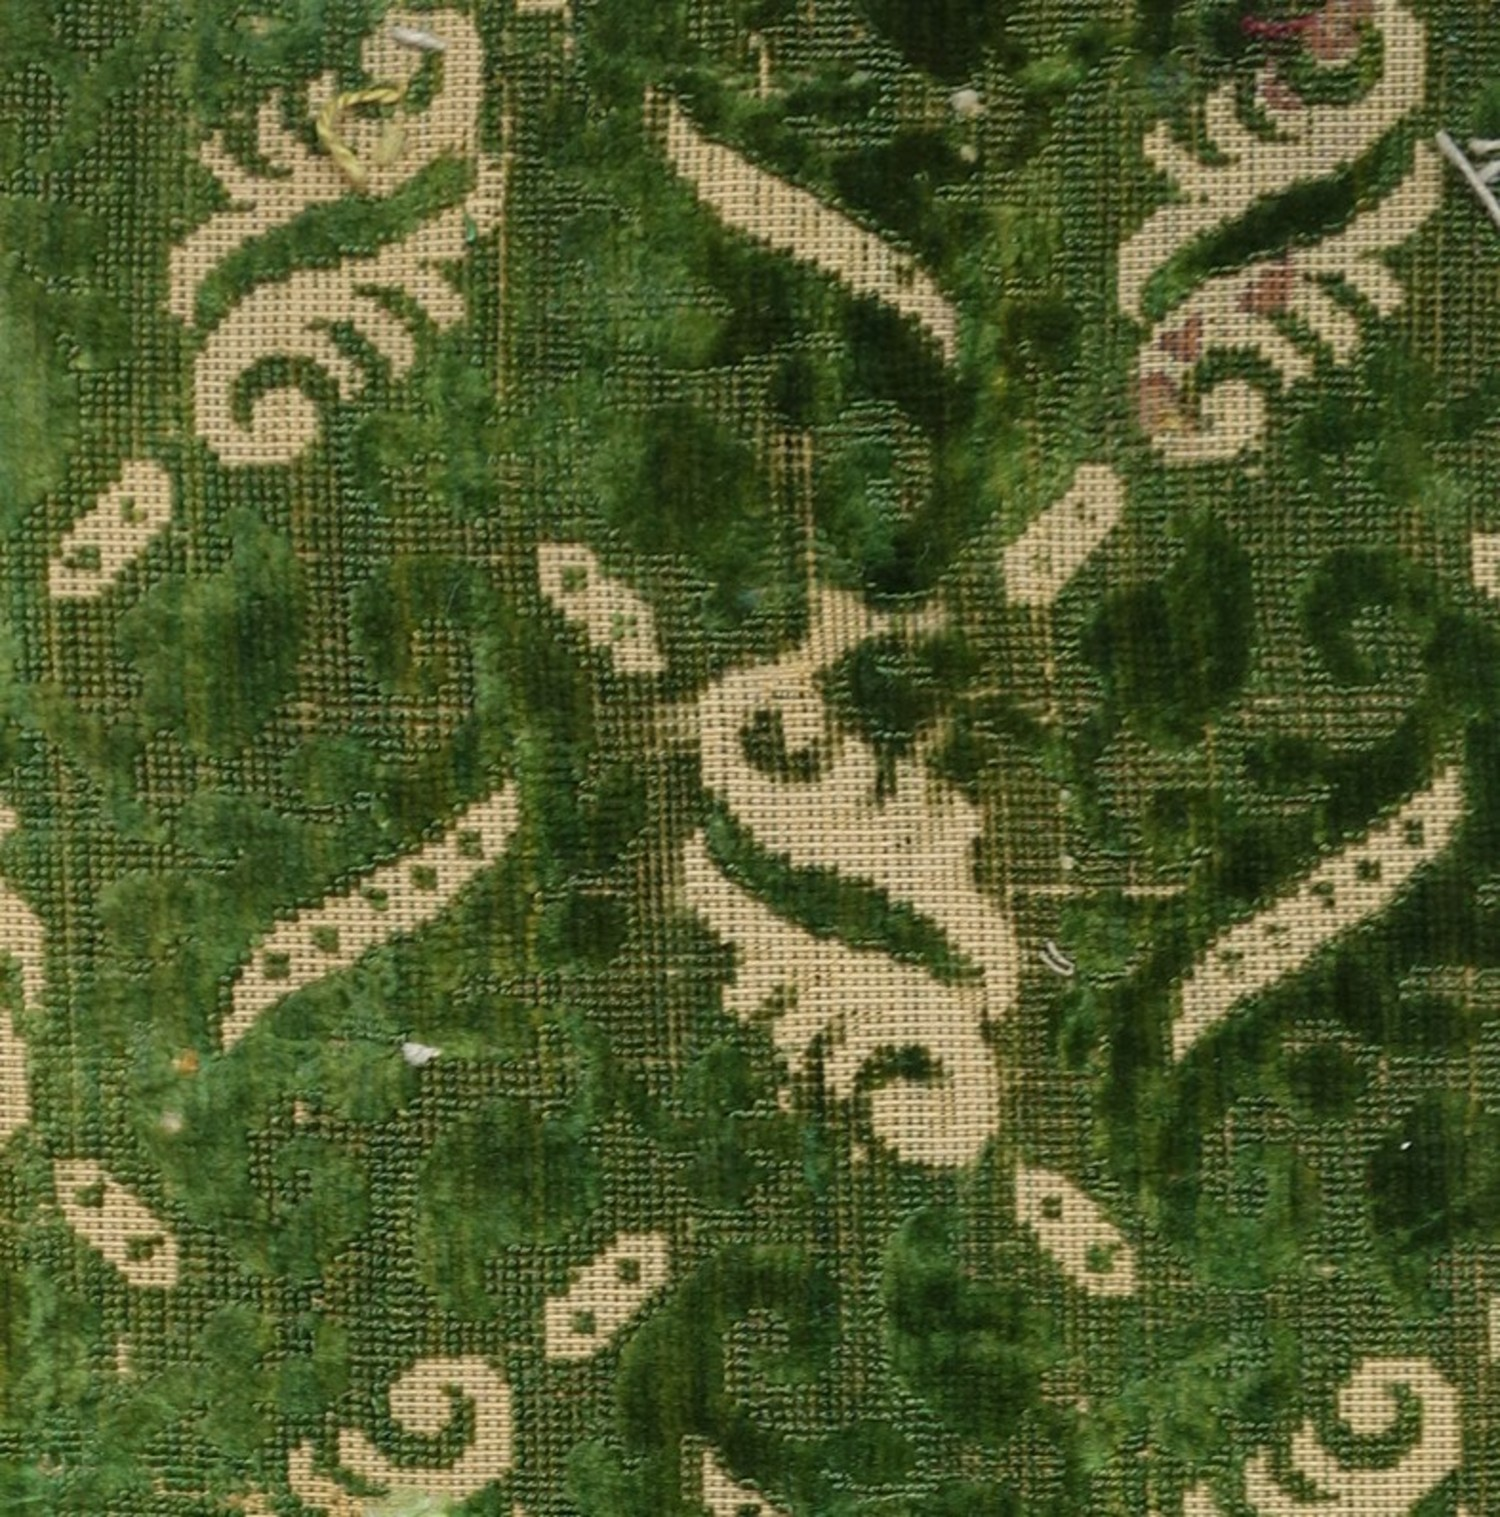 Early 17th century silk and linen voided velvet, European (TRC 2011.0375).